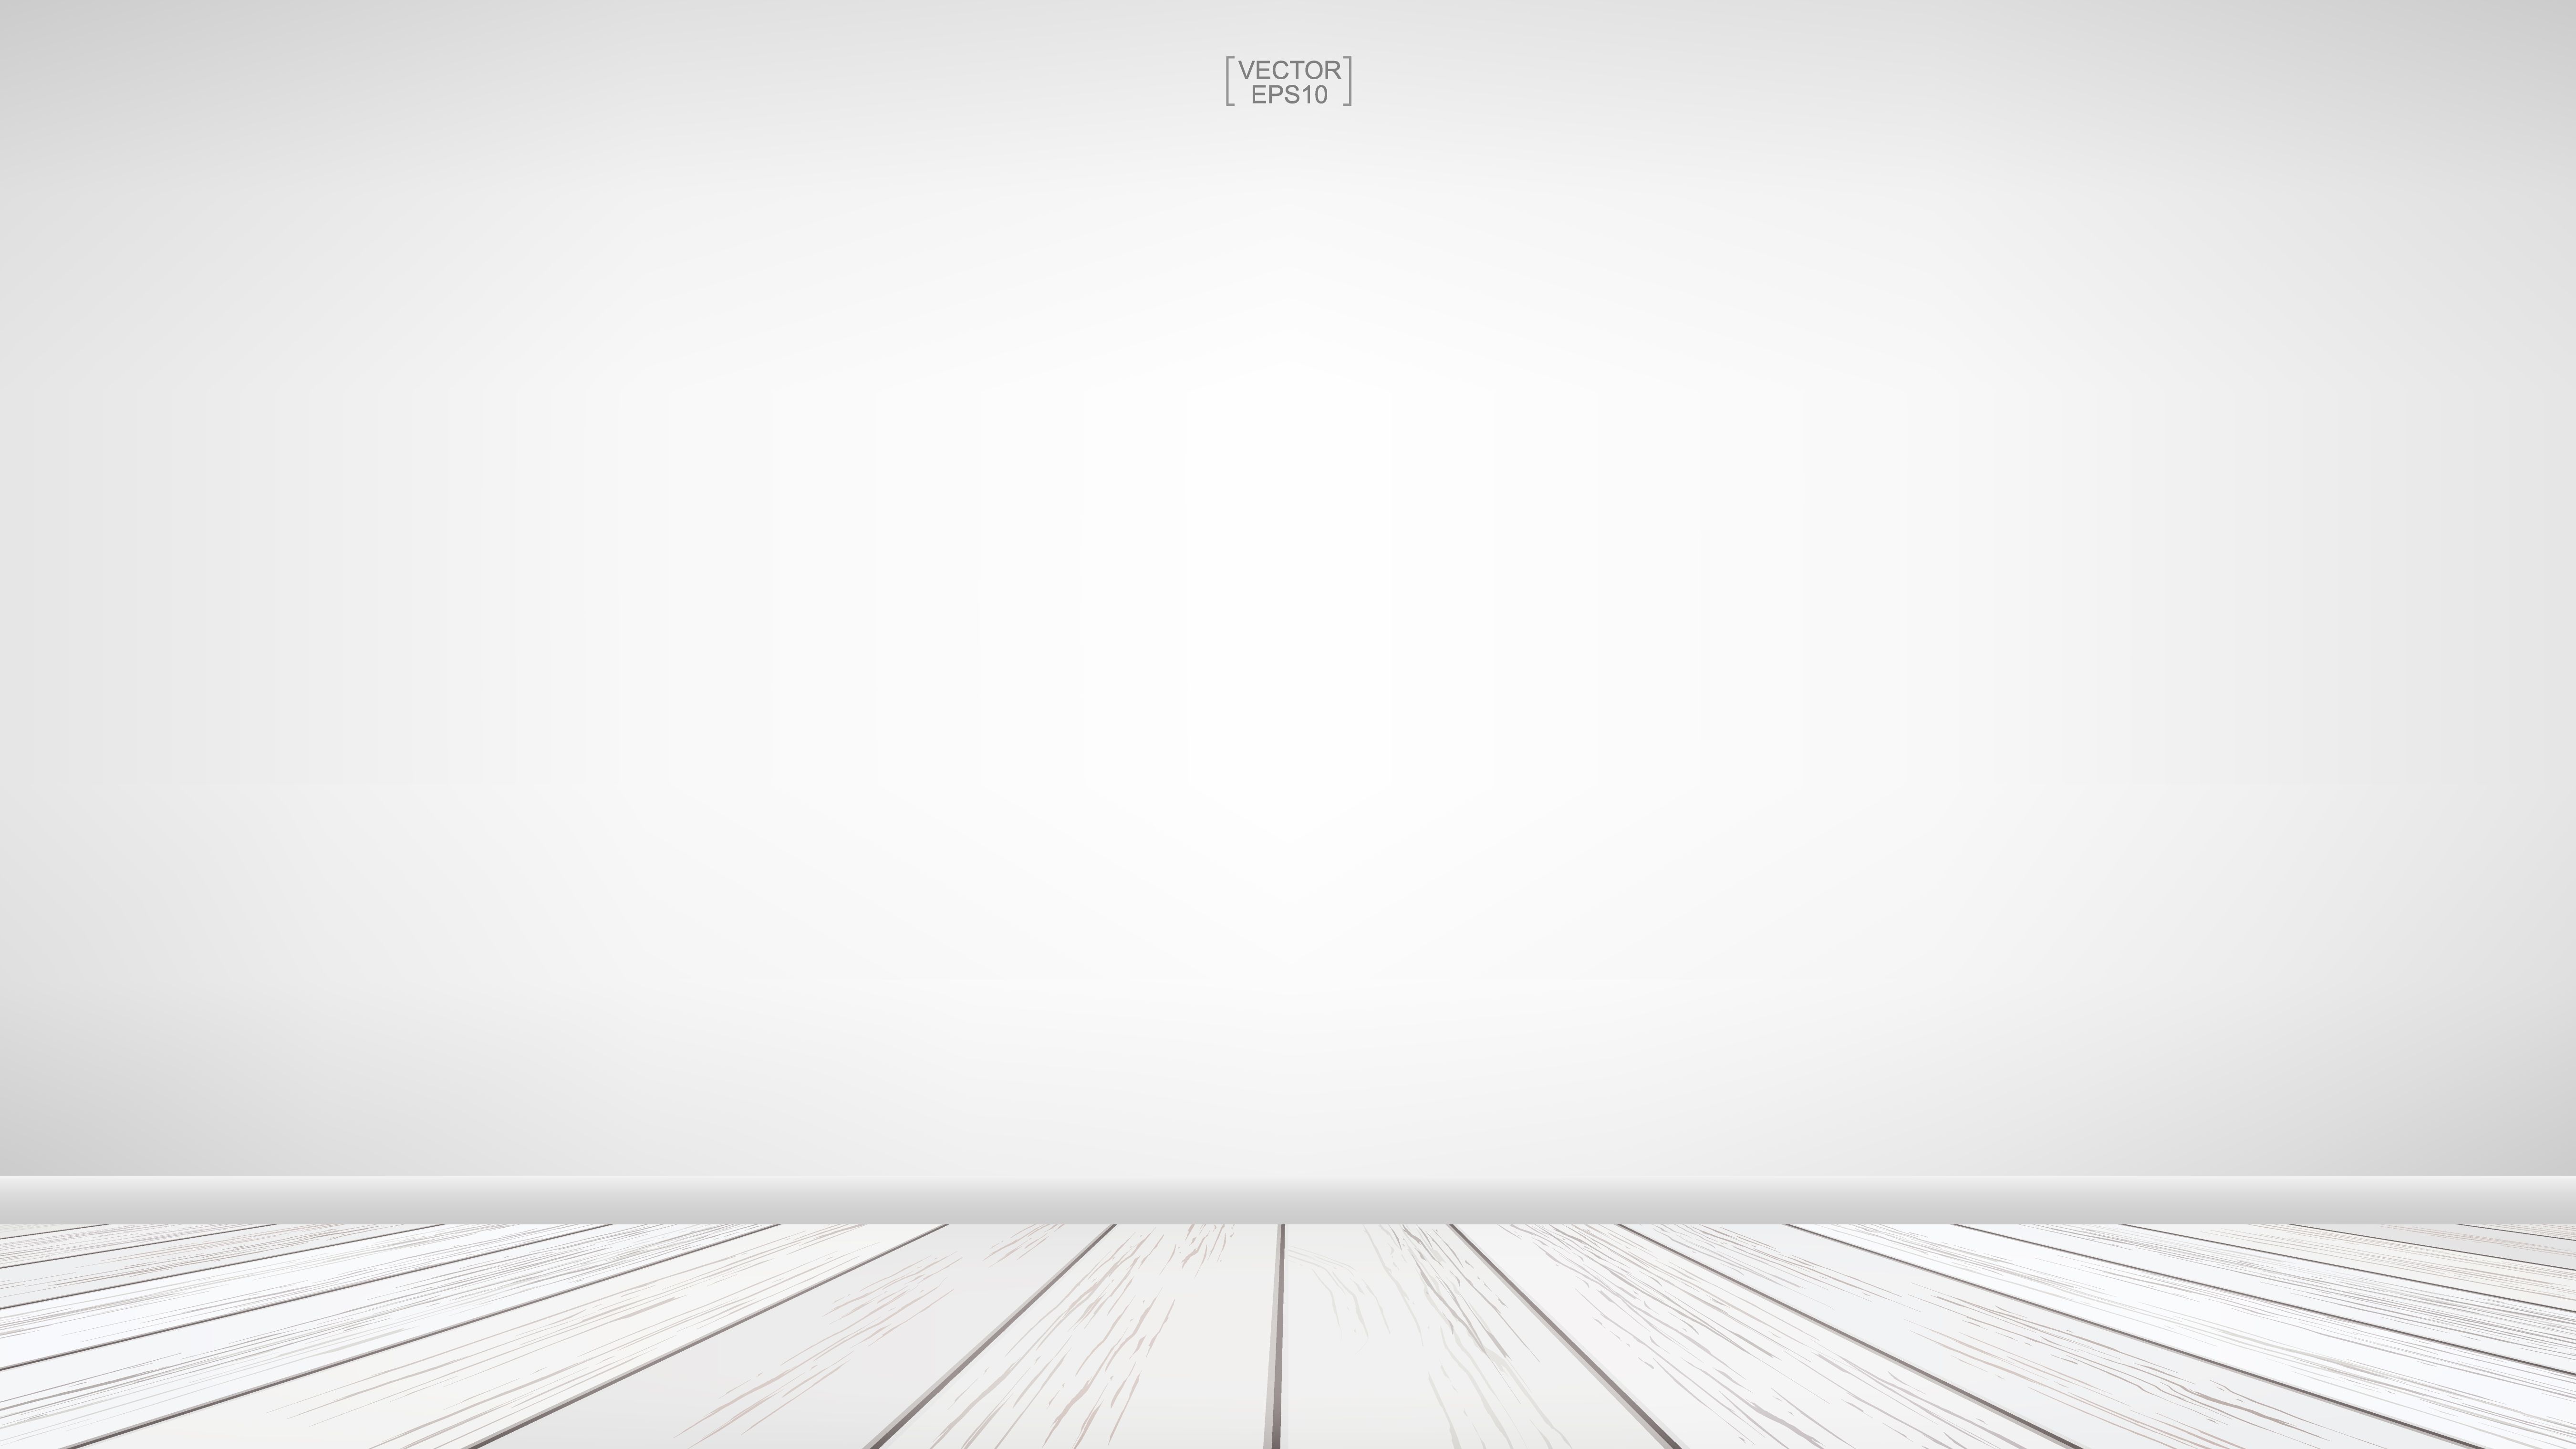 Empty room space with white wood floor - Download Free Vectors